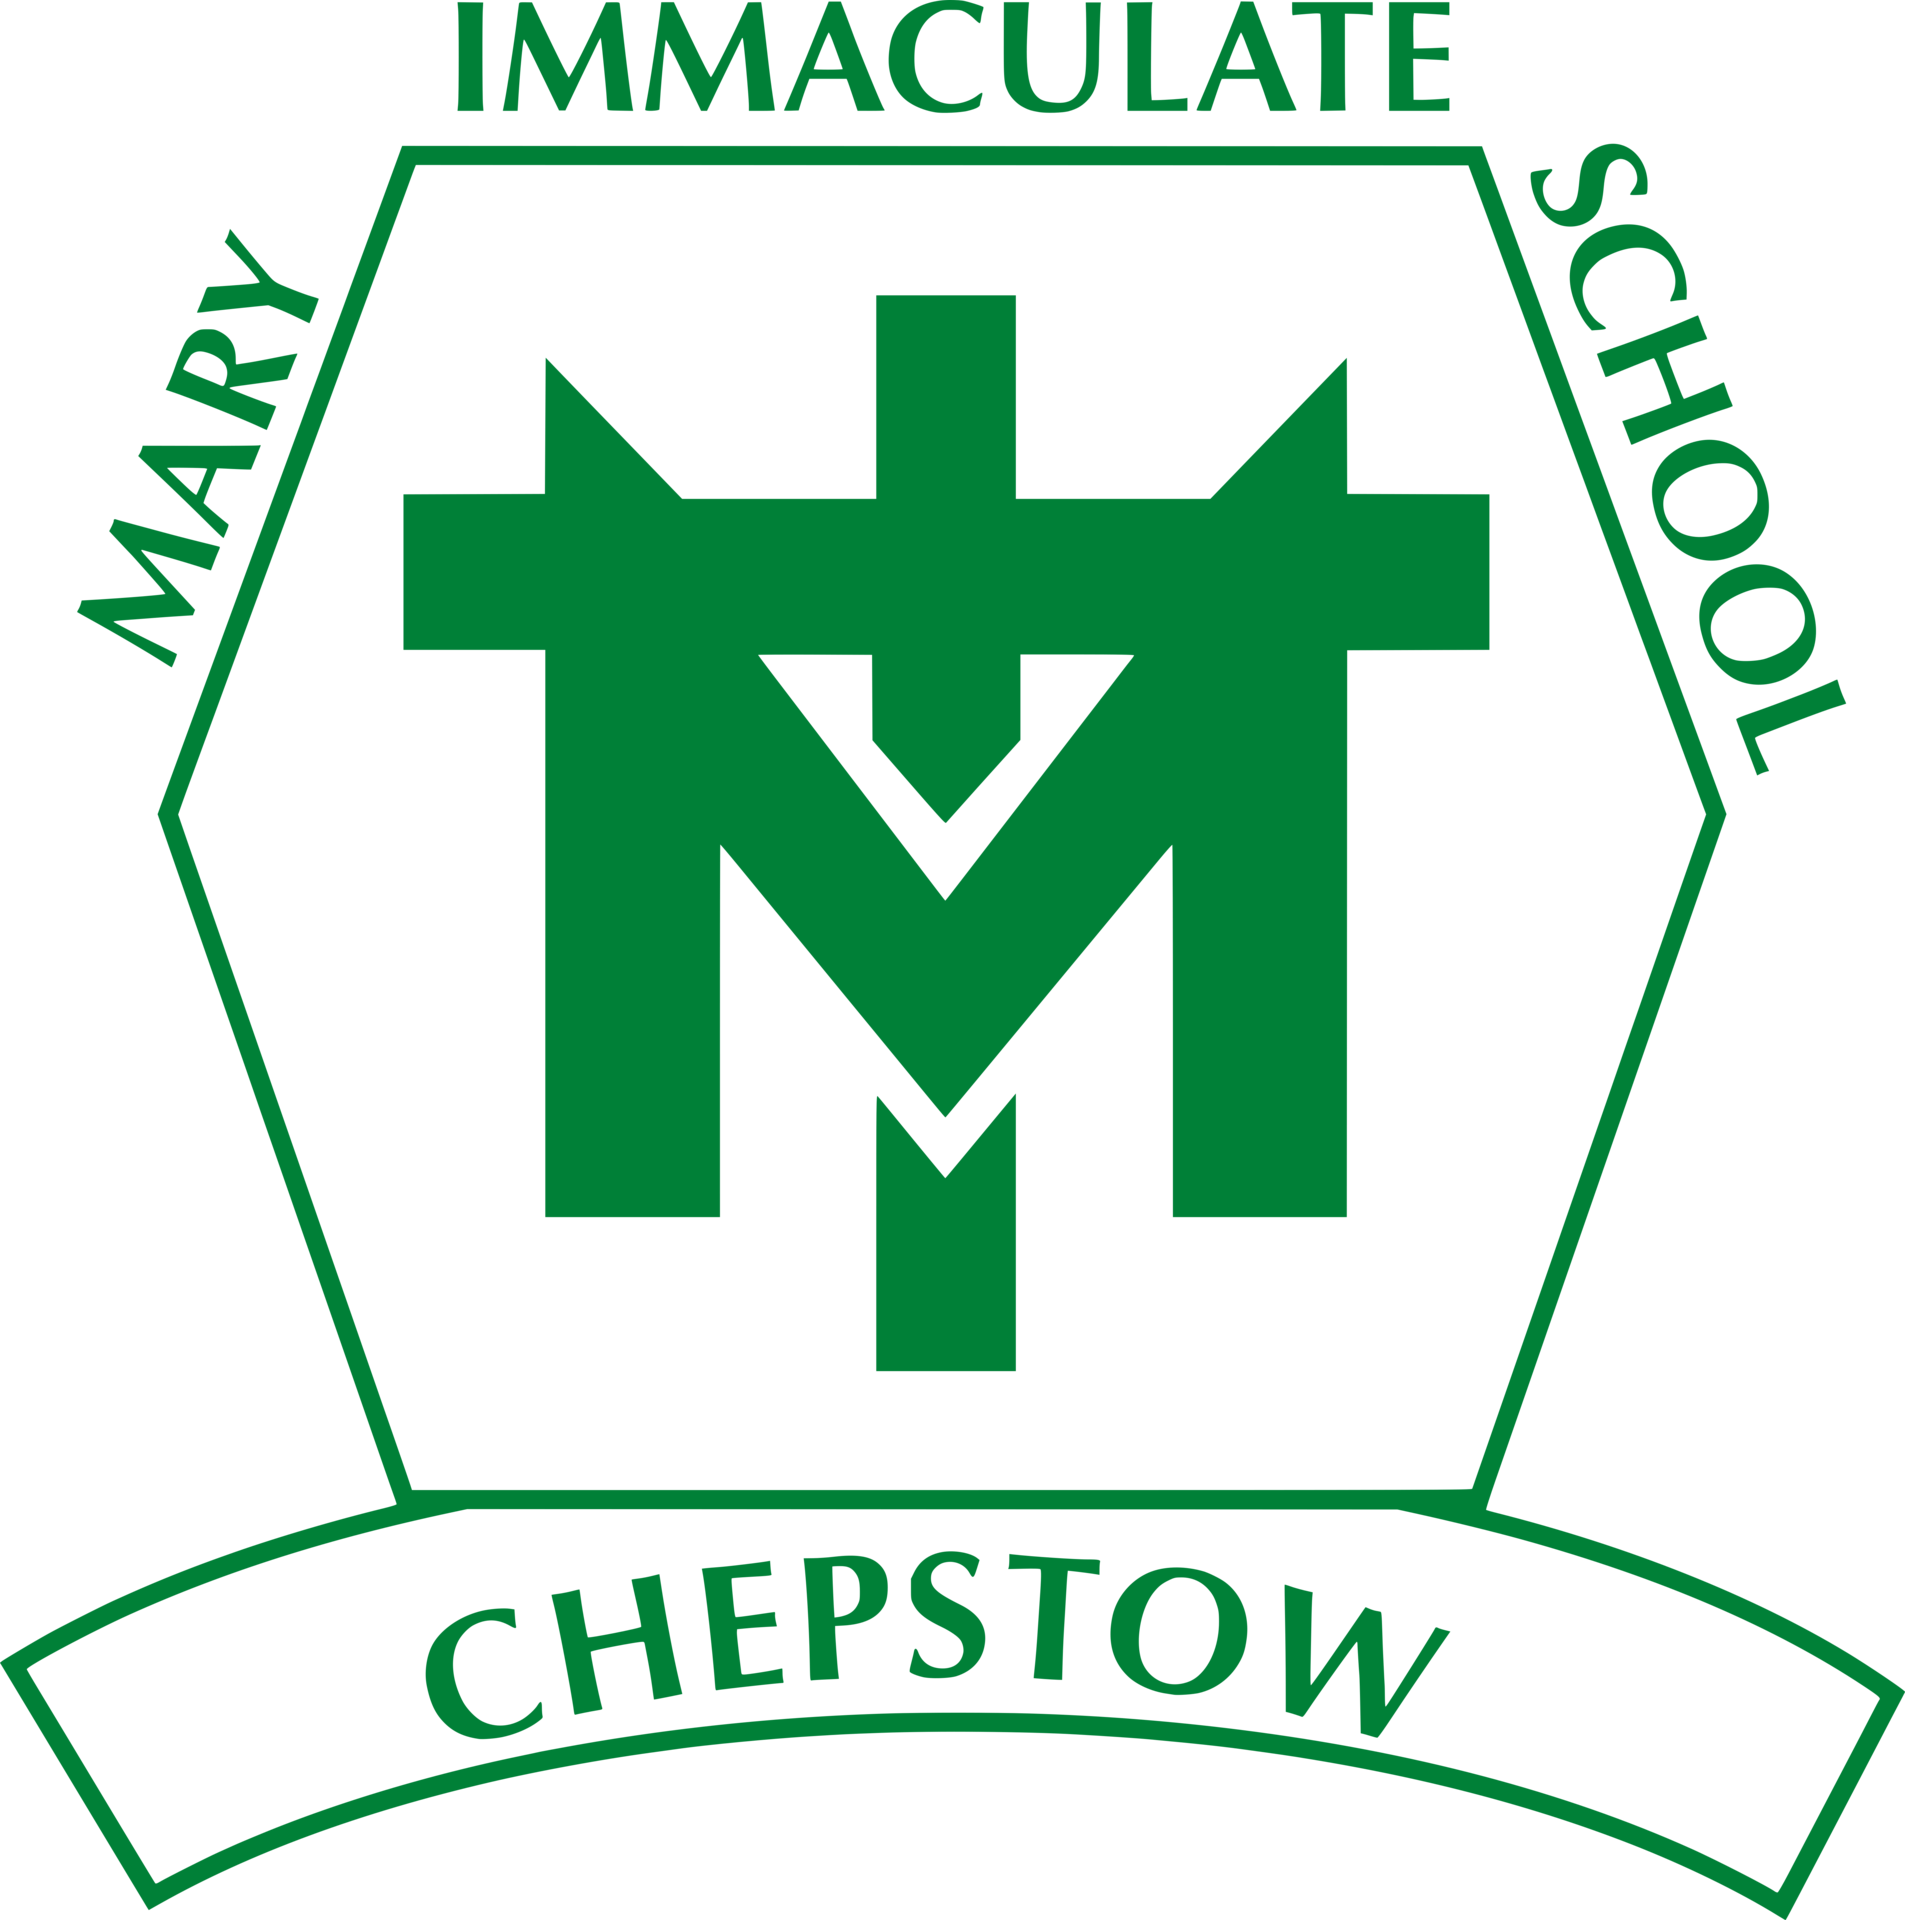 Mary Immaculate Logo